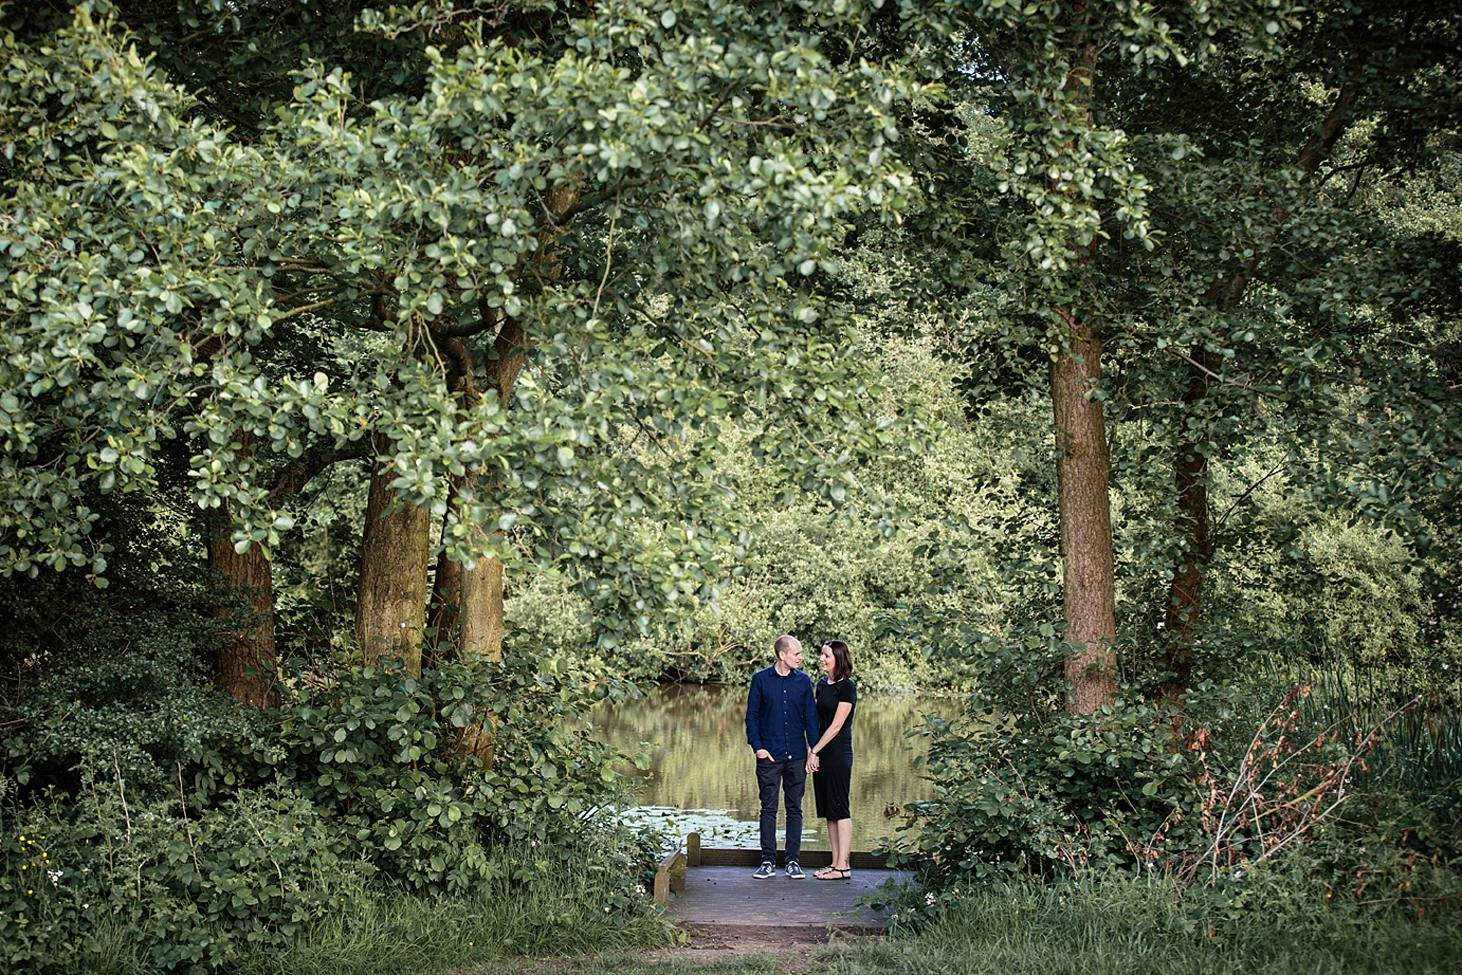 trent park engagement shoot couple in tree clearing